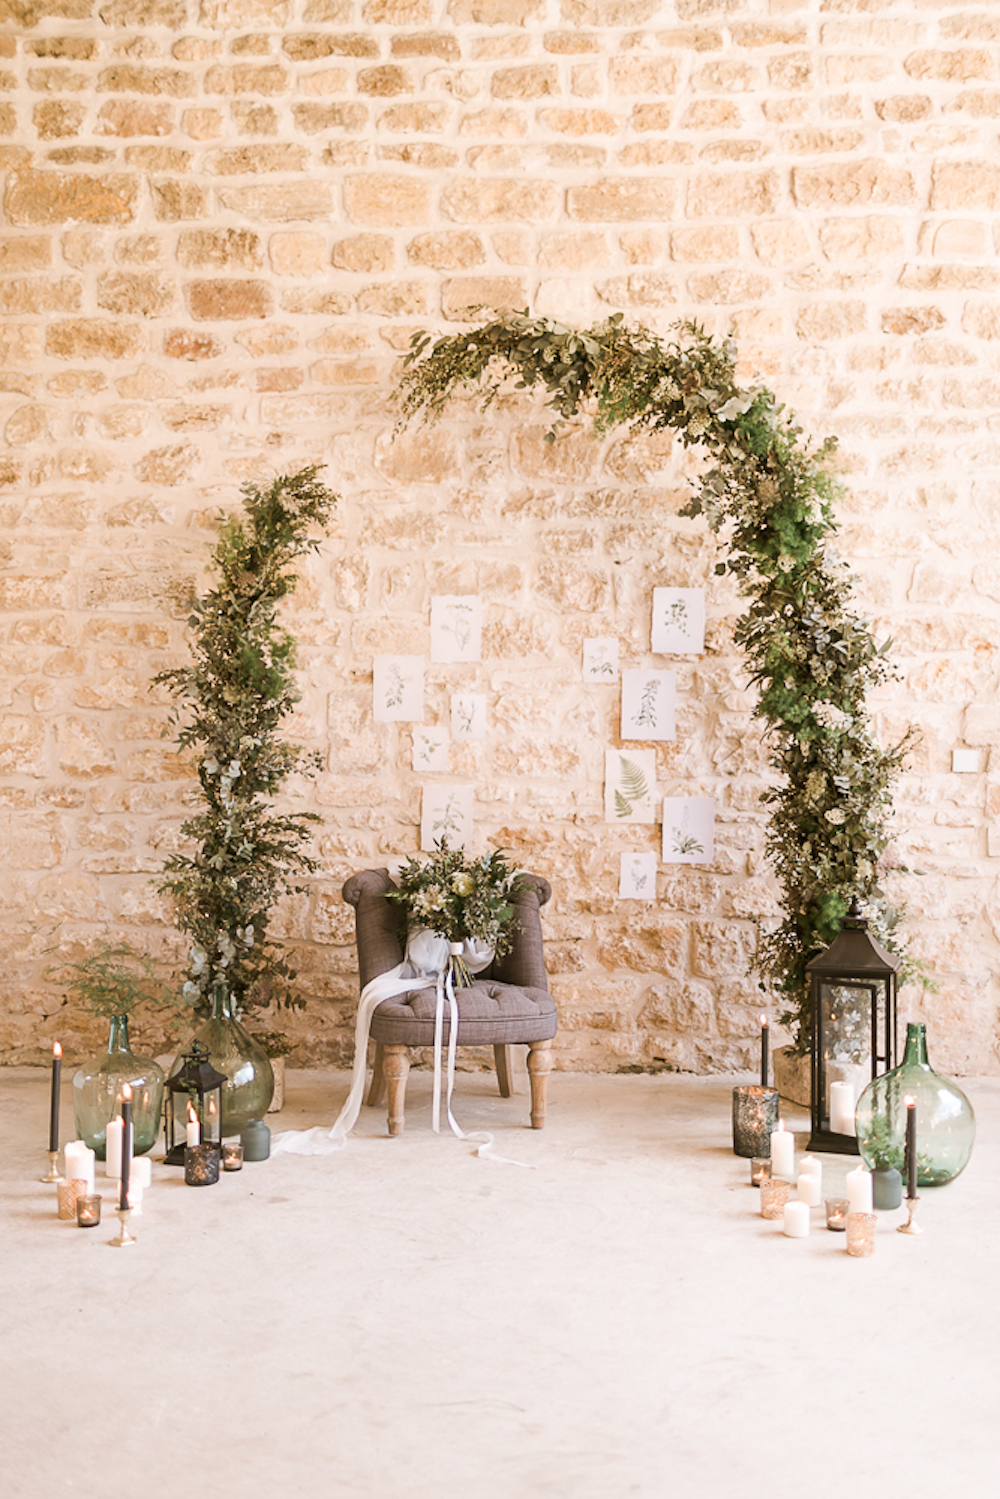 parisian-inspired-blog-mariage-shooting-inspiration-vegetal-abbaye-trois-fontaines-marne-cg-photographie-1.jpg